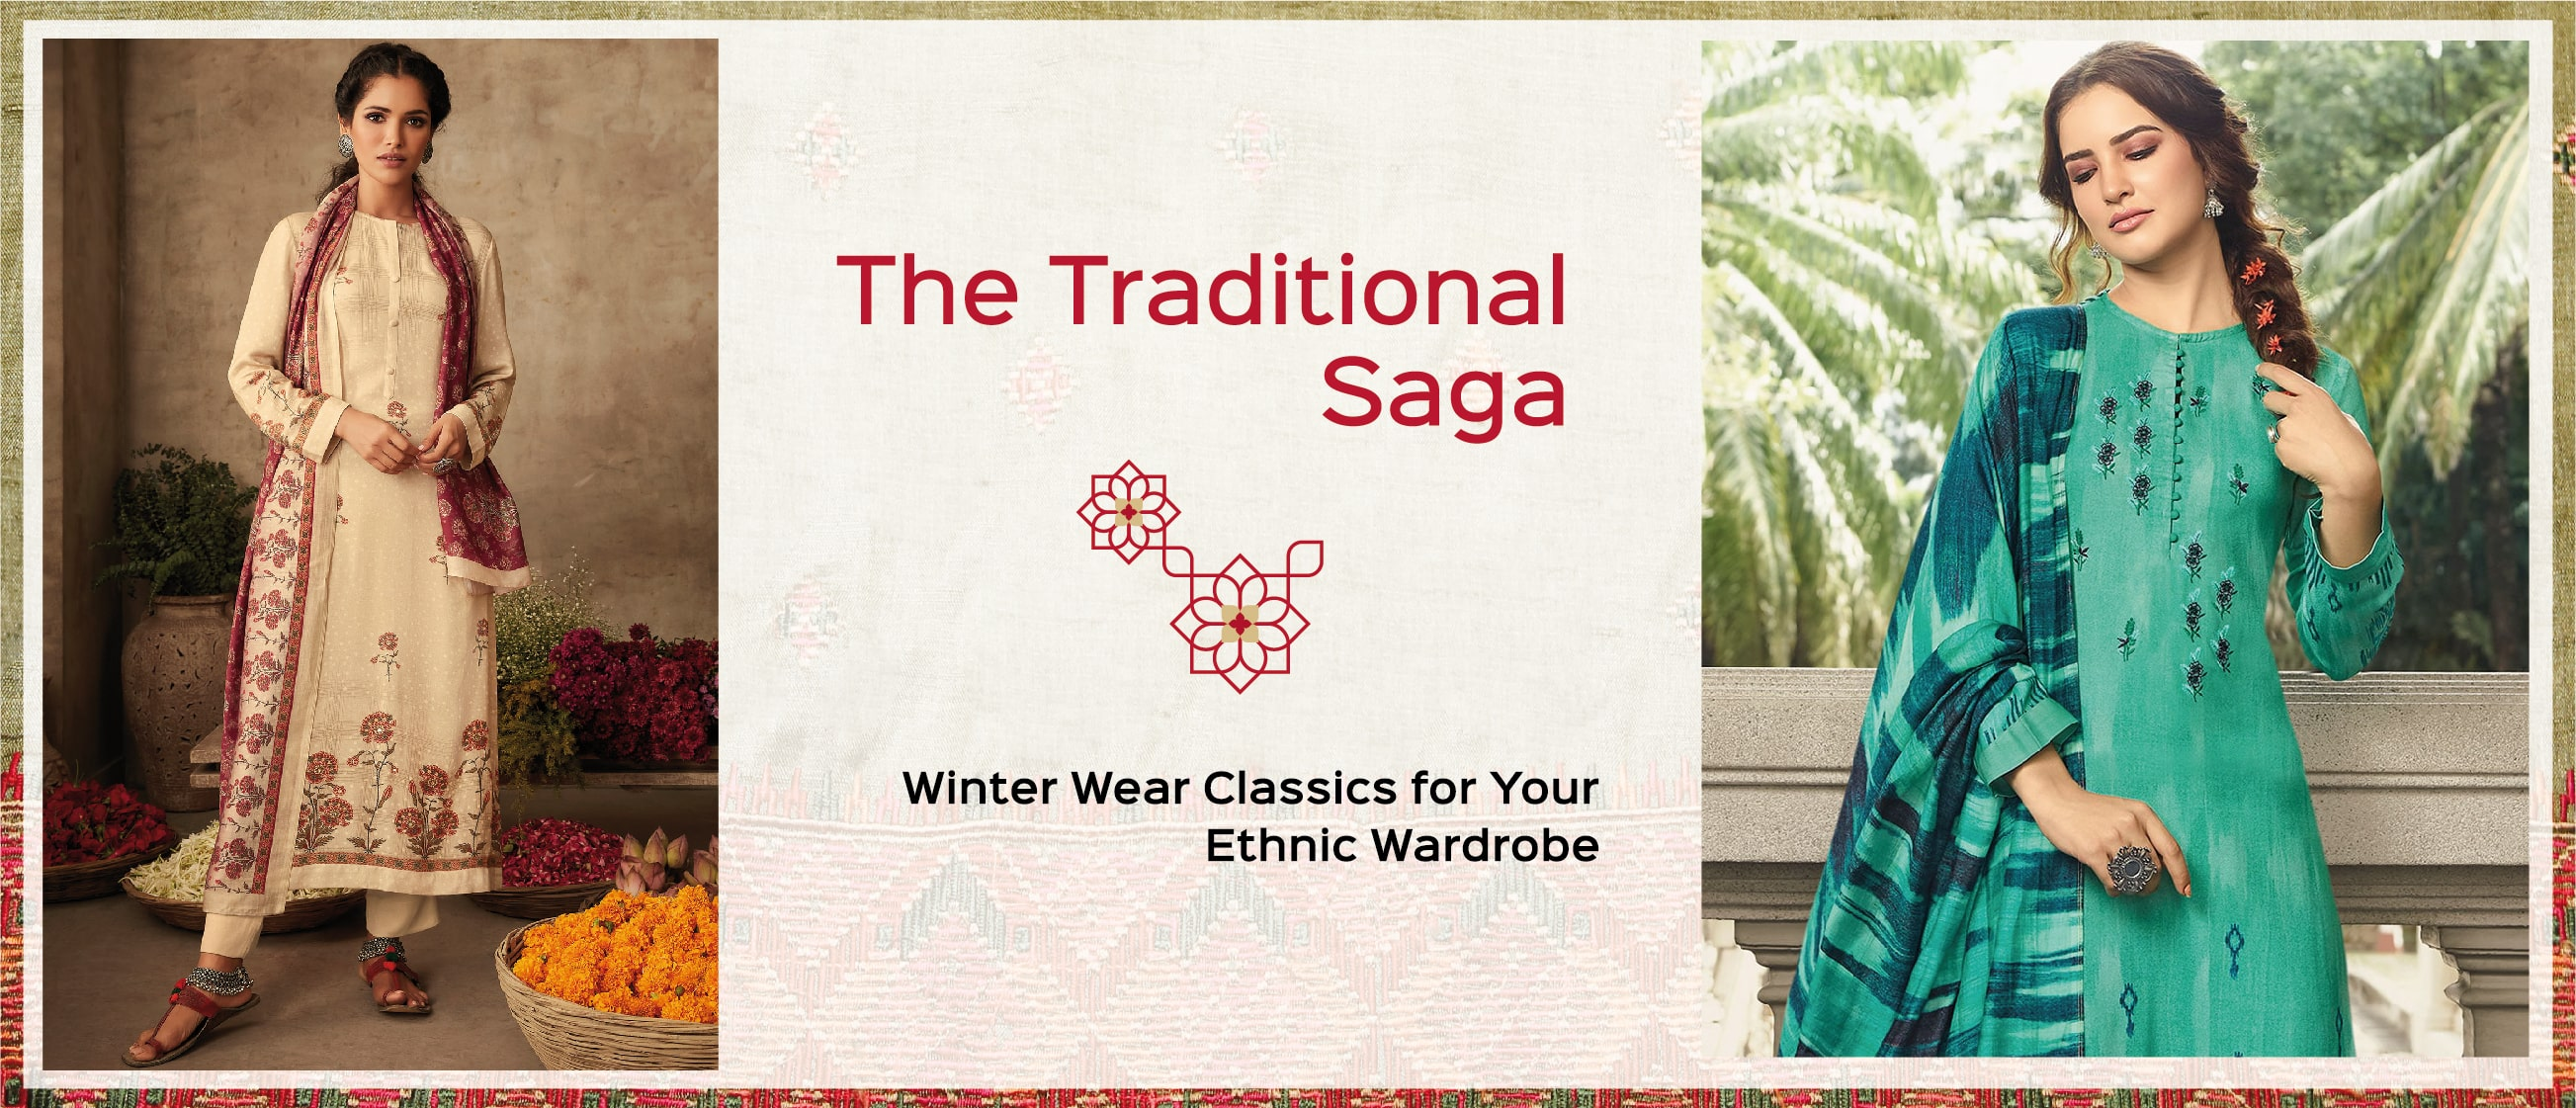 The Traditional Saga: Winter Wear Classics for Your Ethnic Wardrobe